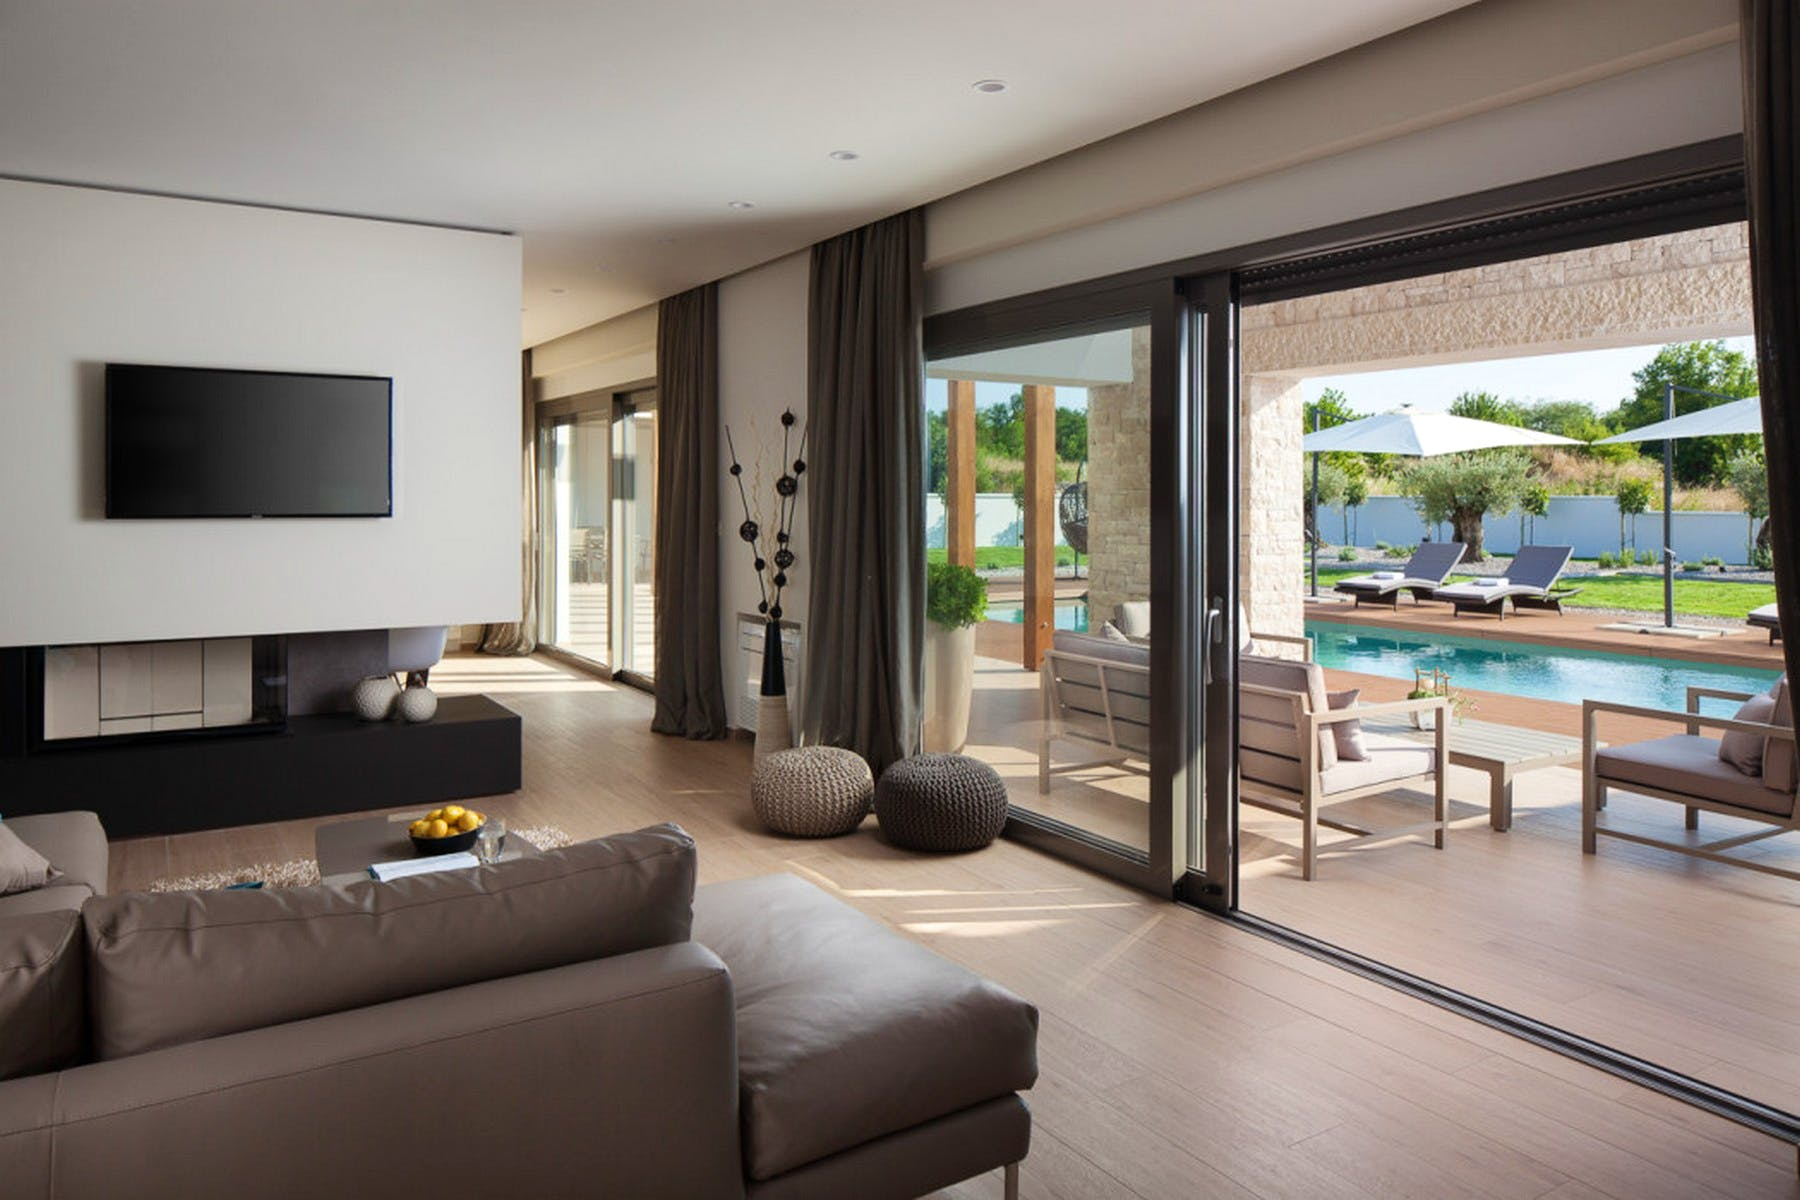 Open plan living area with the access to the terrace and swimming pool